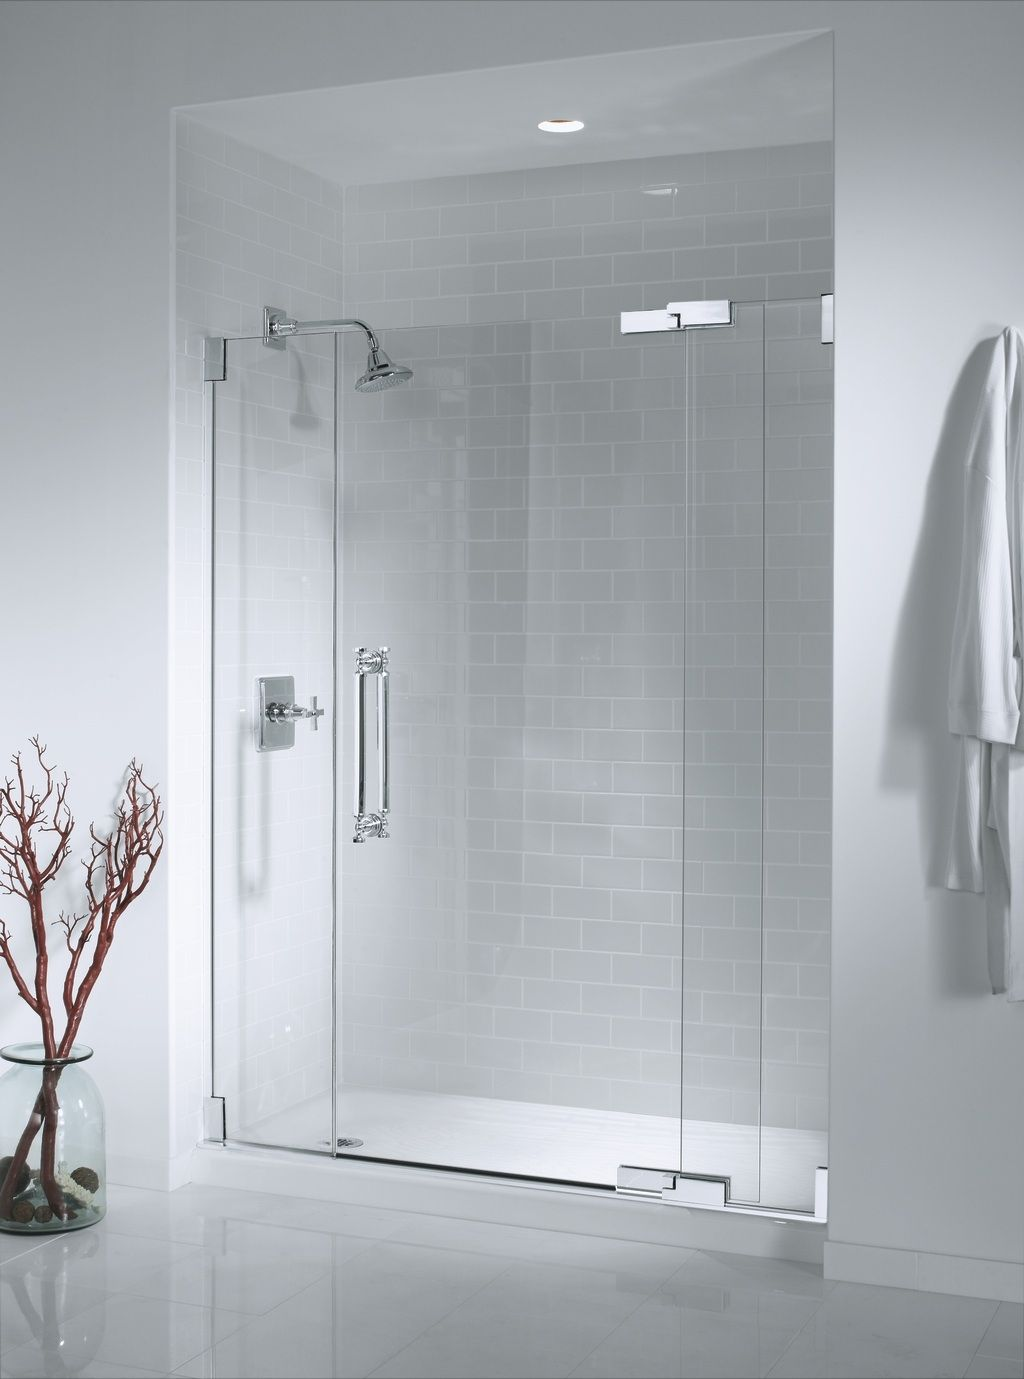 Frameless Shower Doors.Glass Showers Our Shower Doors Do More Than Simply Open And Close